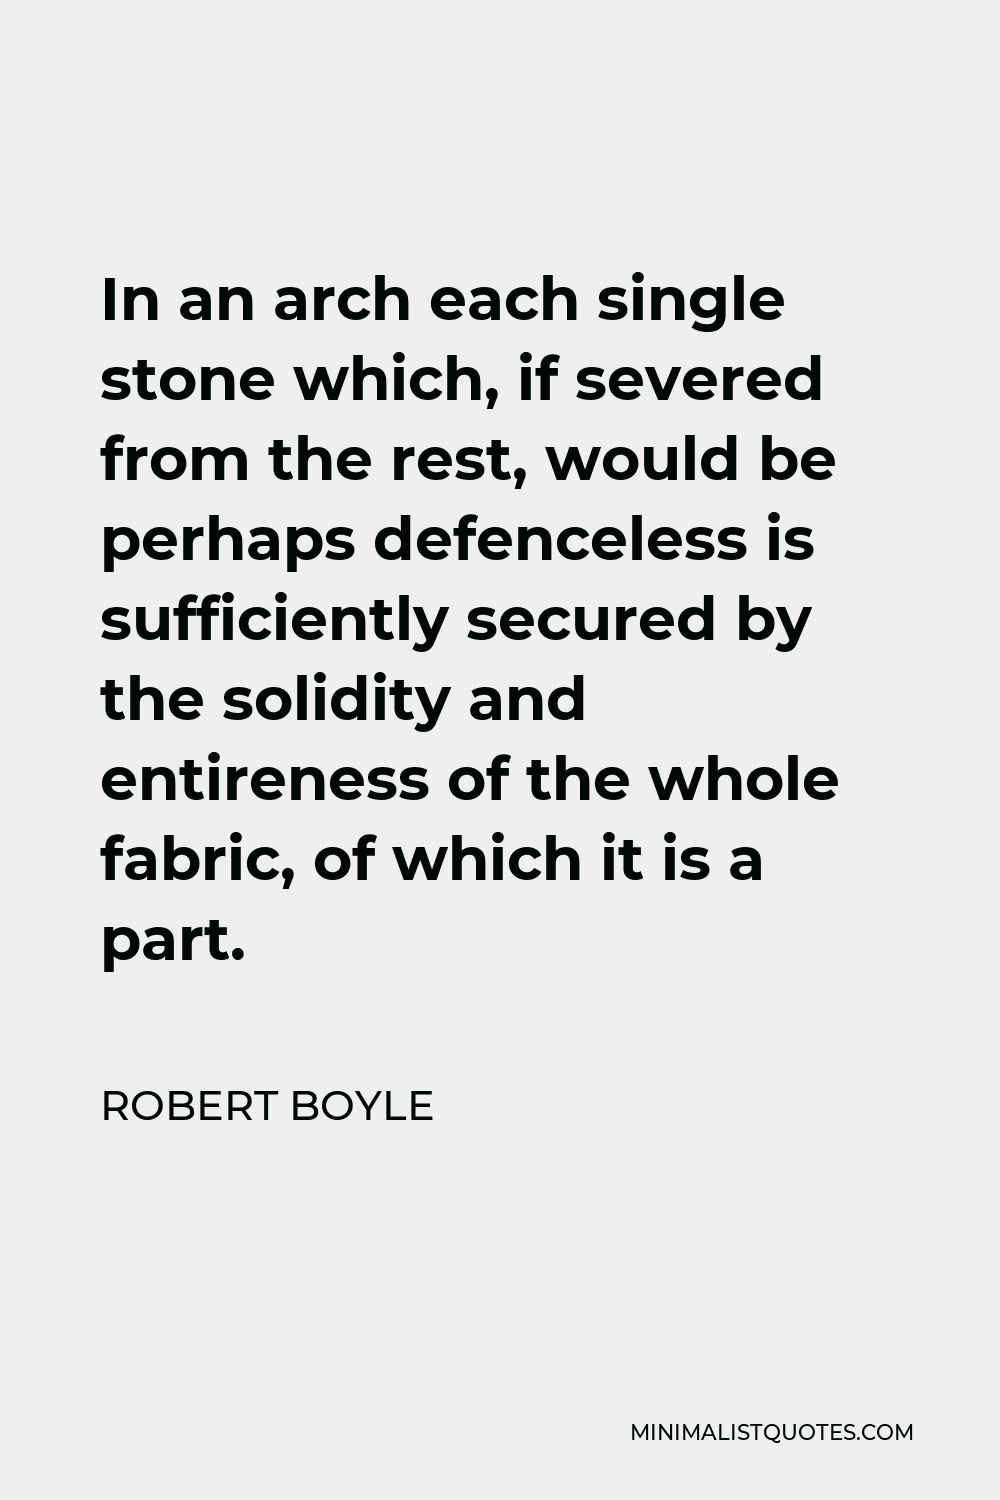 Robert Boyle Quote - In an arch each single stone which, if severed from the rest, would be perhaps defenceless is sufficiently secured by the solidity and entireness of the whole fabric, of which it is a part.